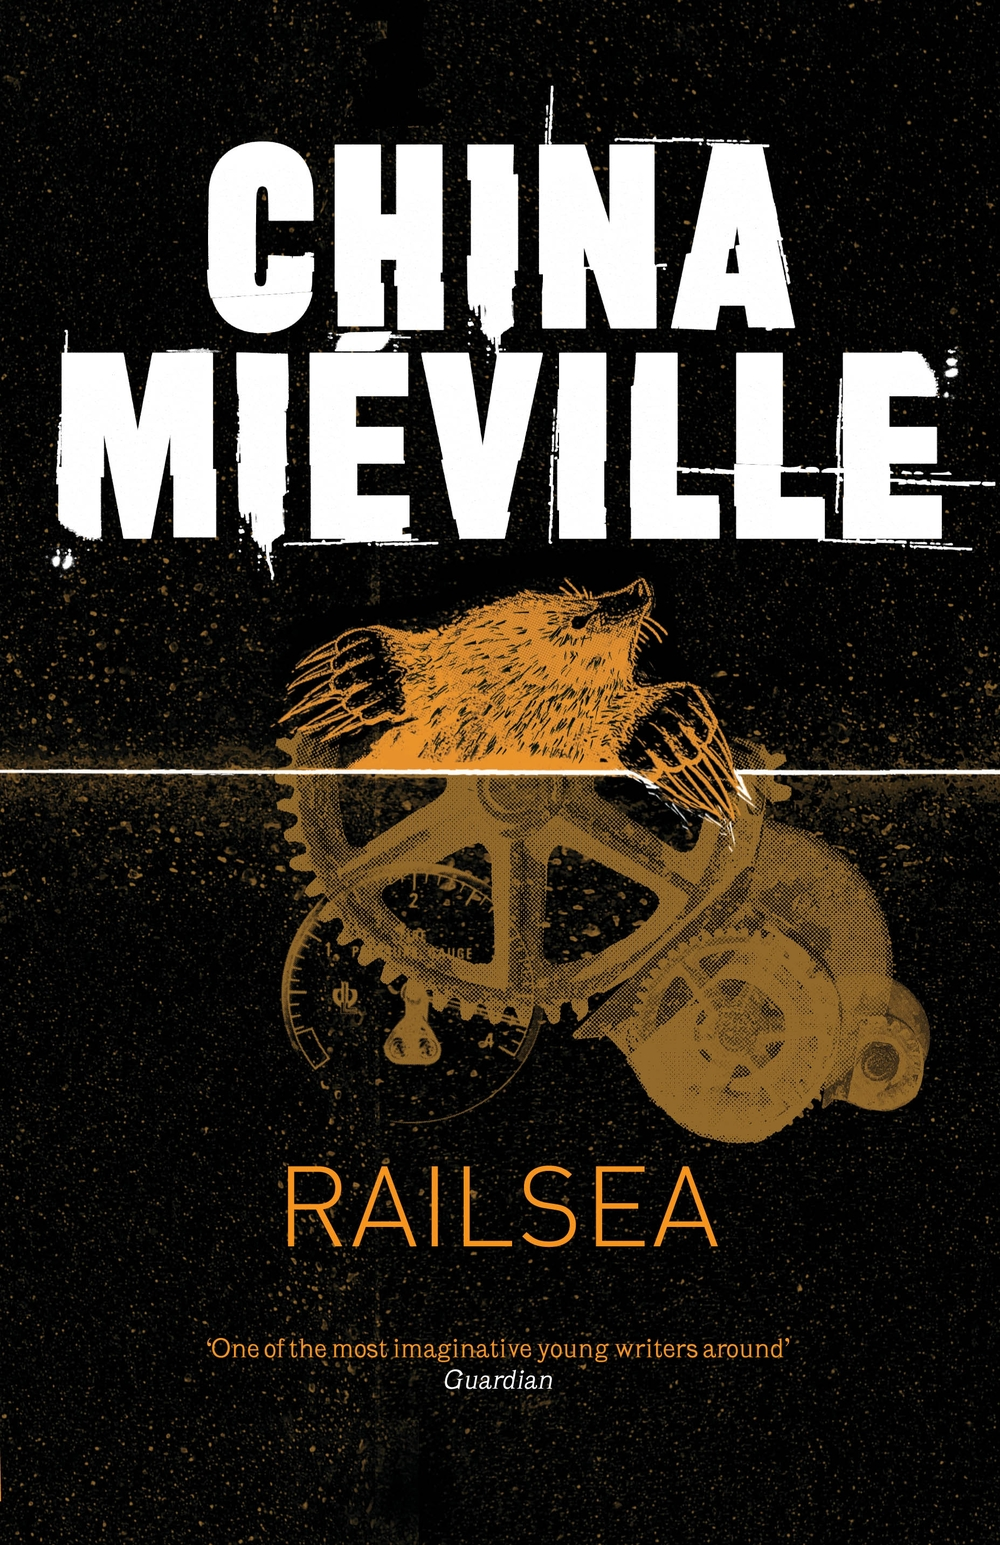 RAILSEA: cover design by crushed.co.uk; in-house designer Neil Lang